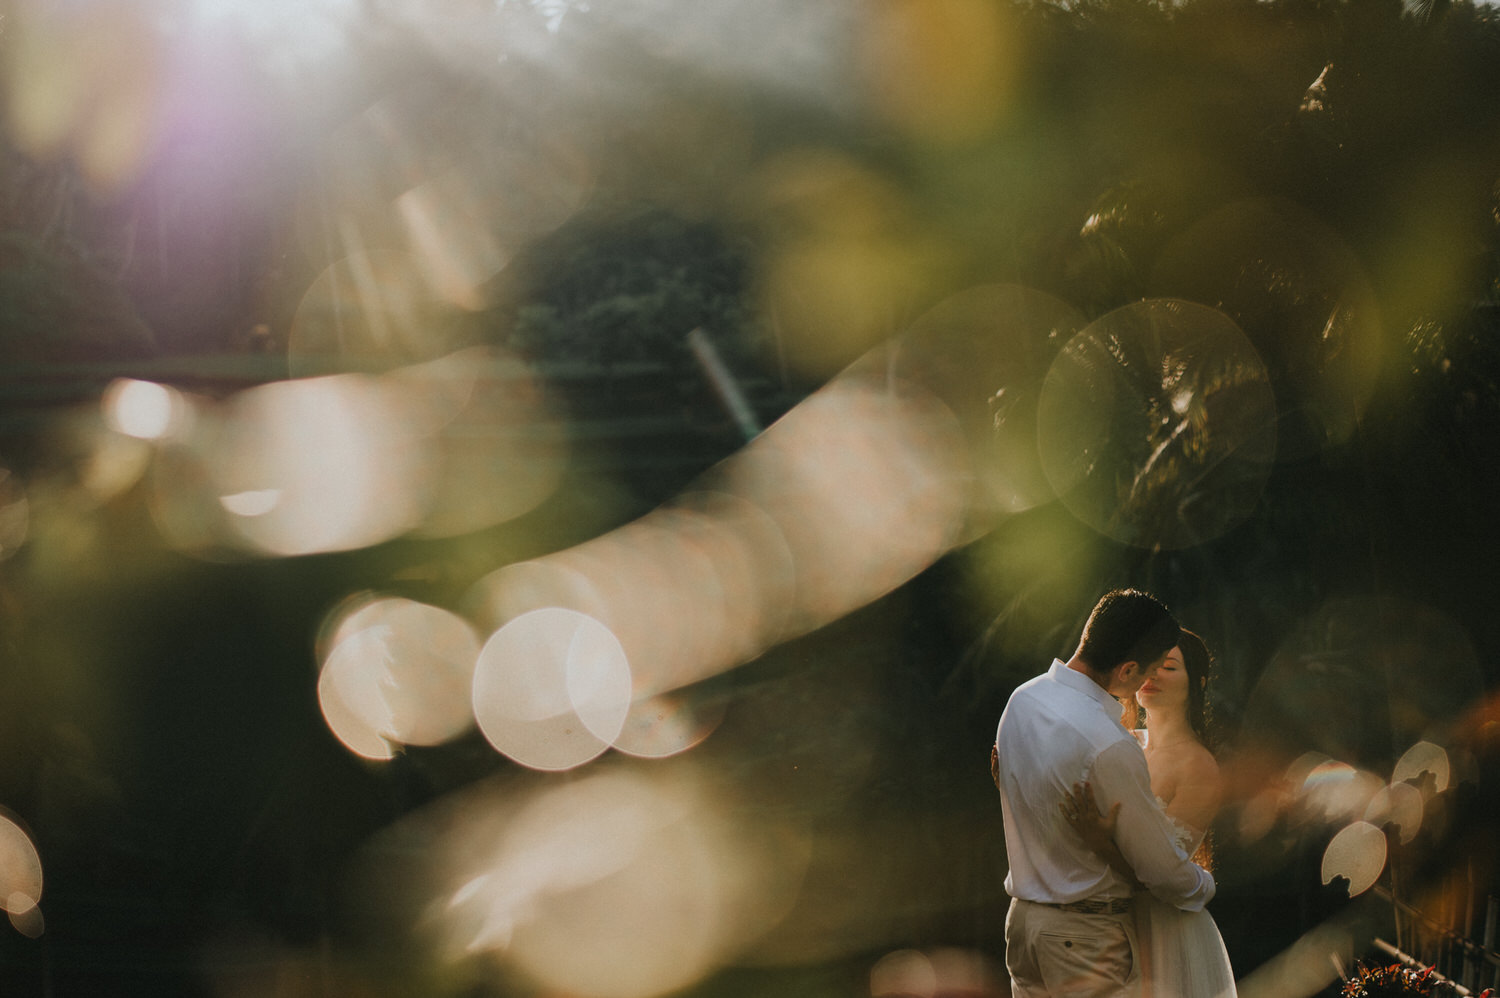 bali wedding - elopement - ubud wedding - diktatphotography - olga + Jason - 12